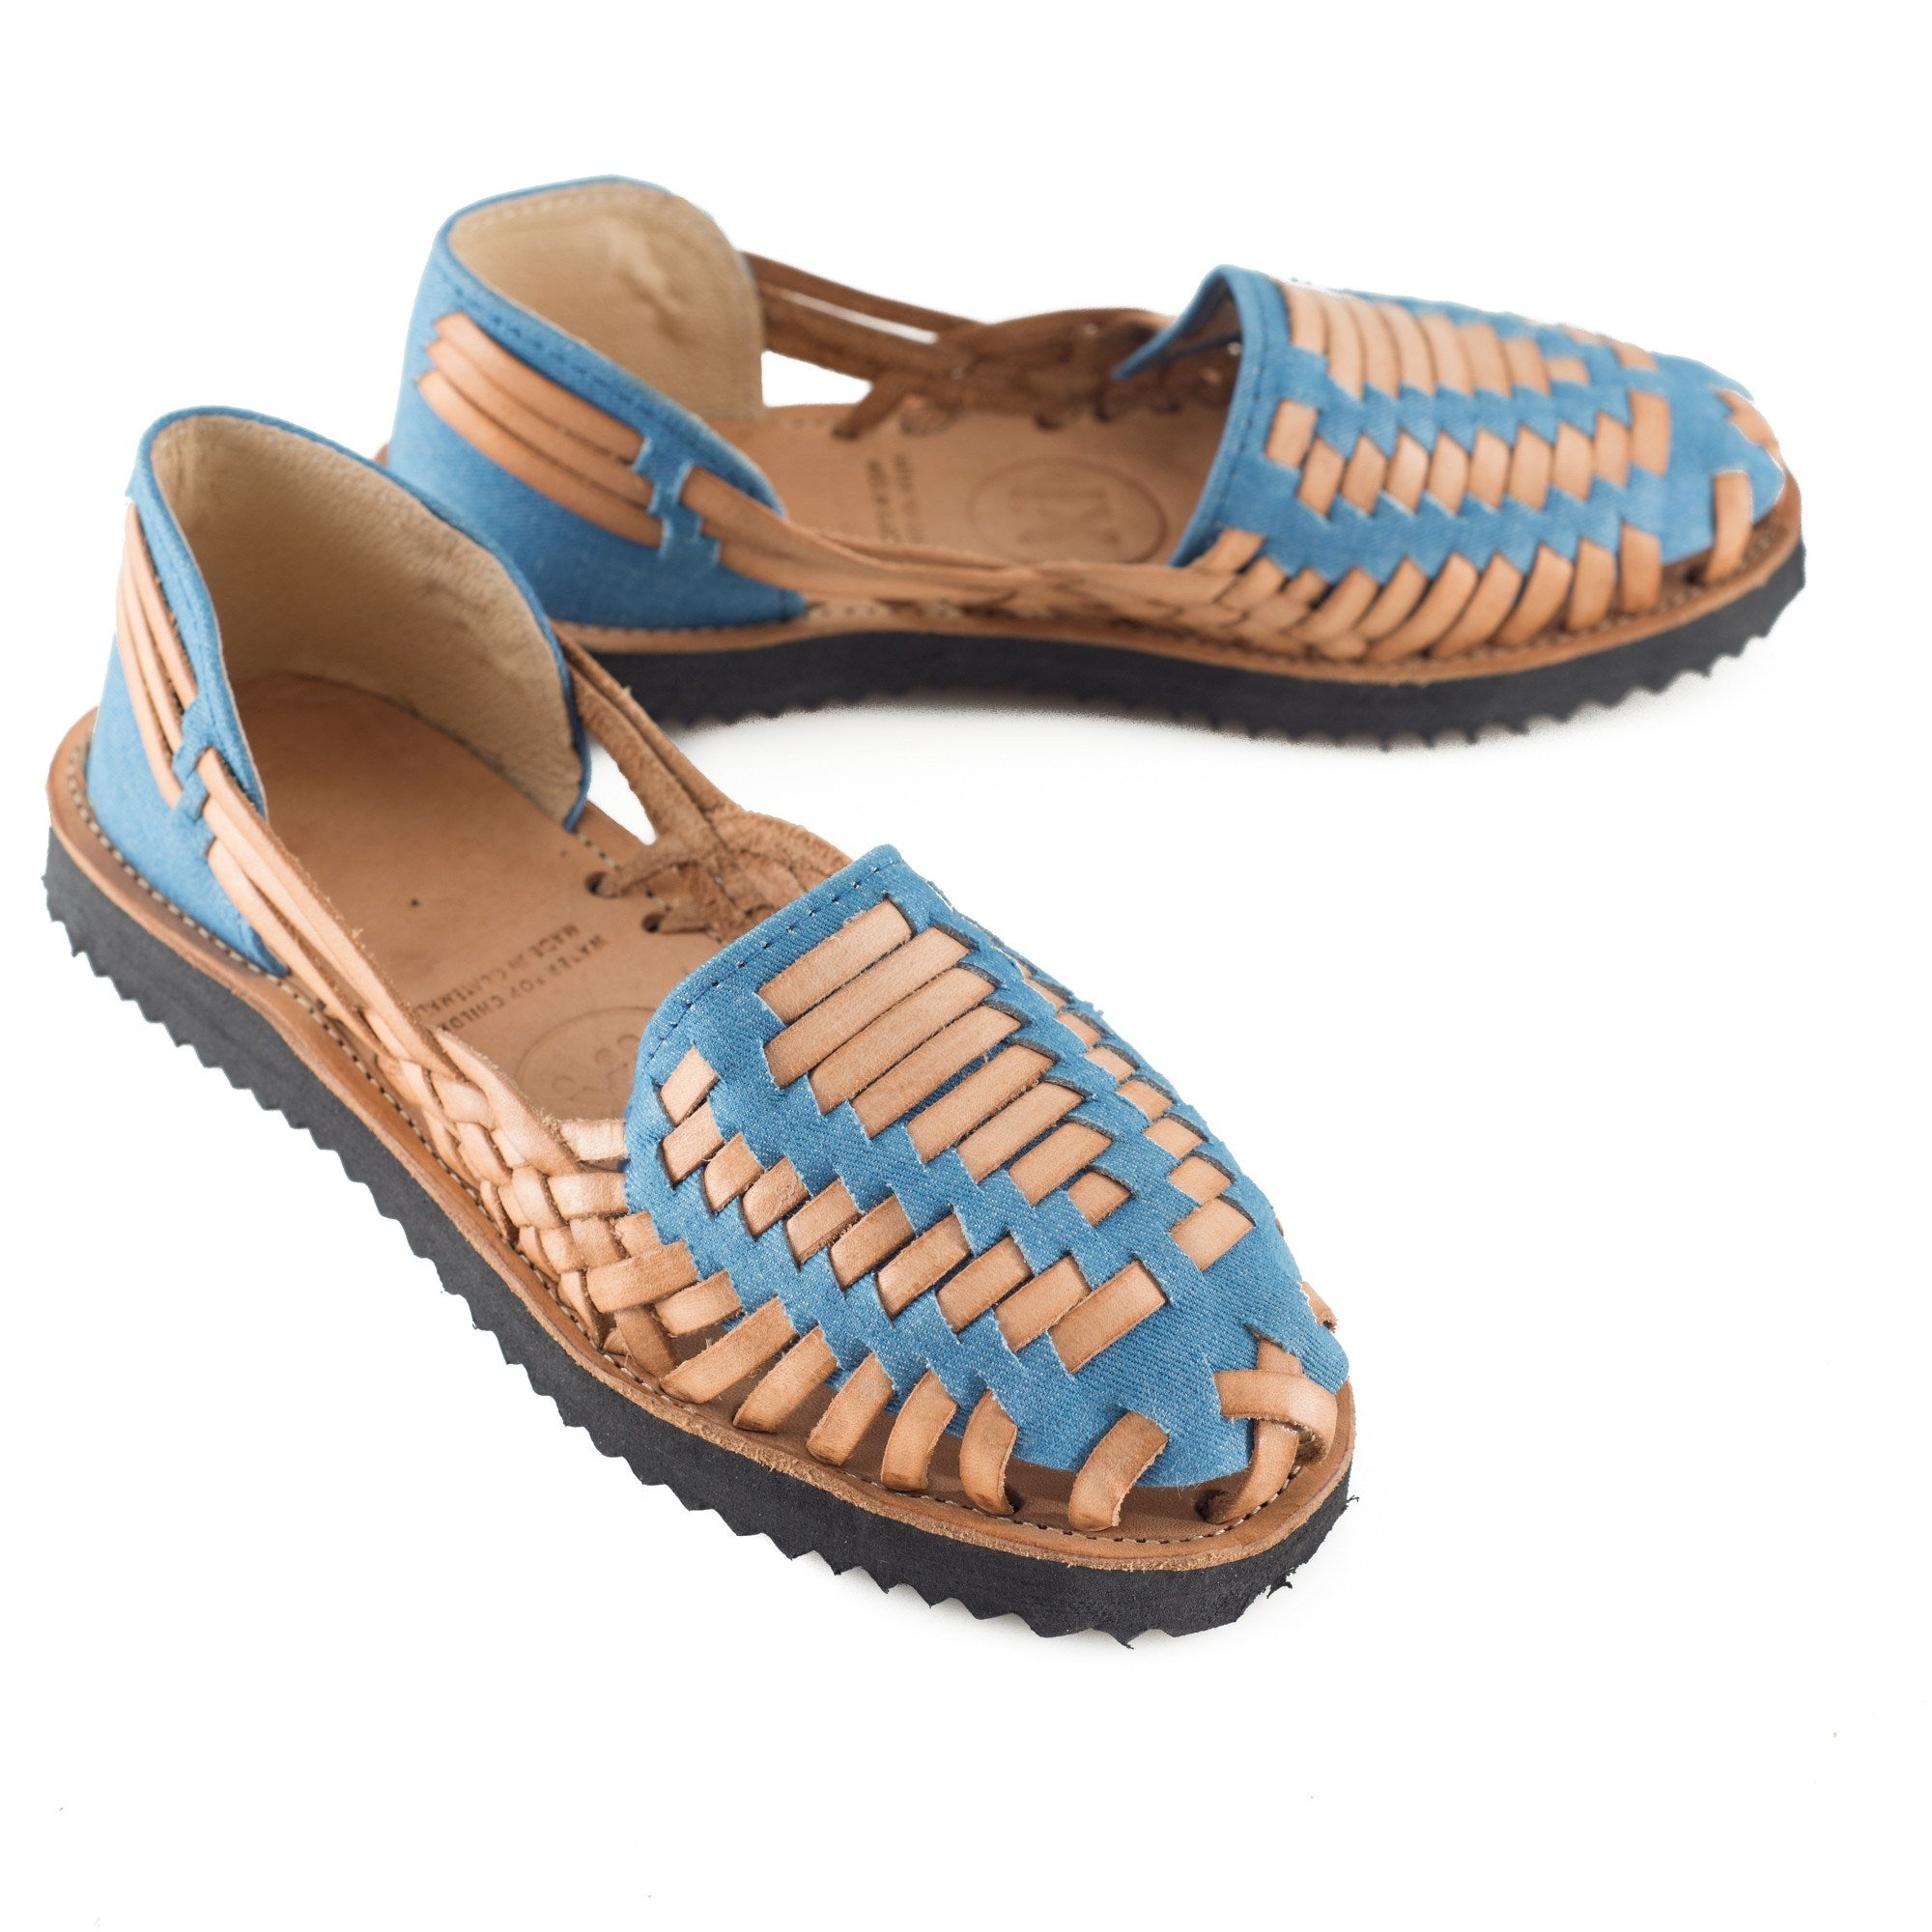 Women's Sky Blue Woven Leather Huarache Sandal - Ix Style - Water For Children